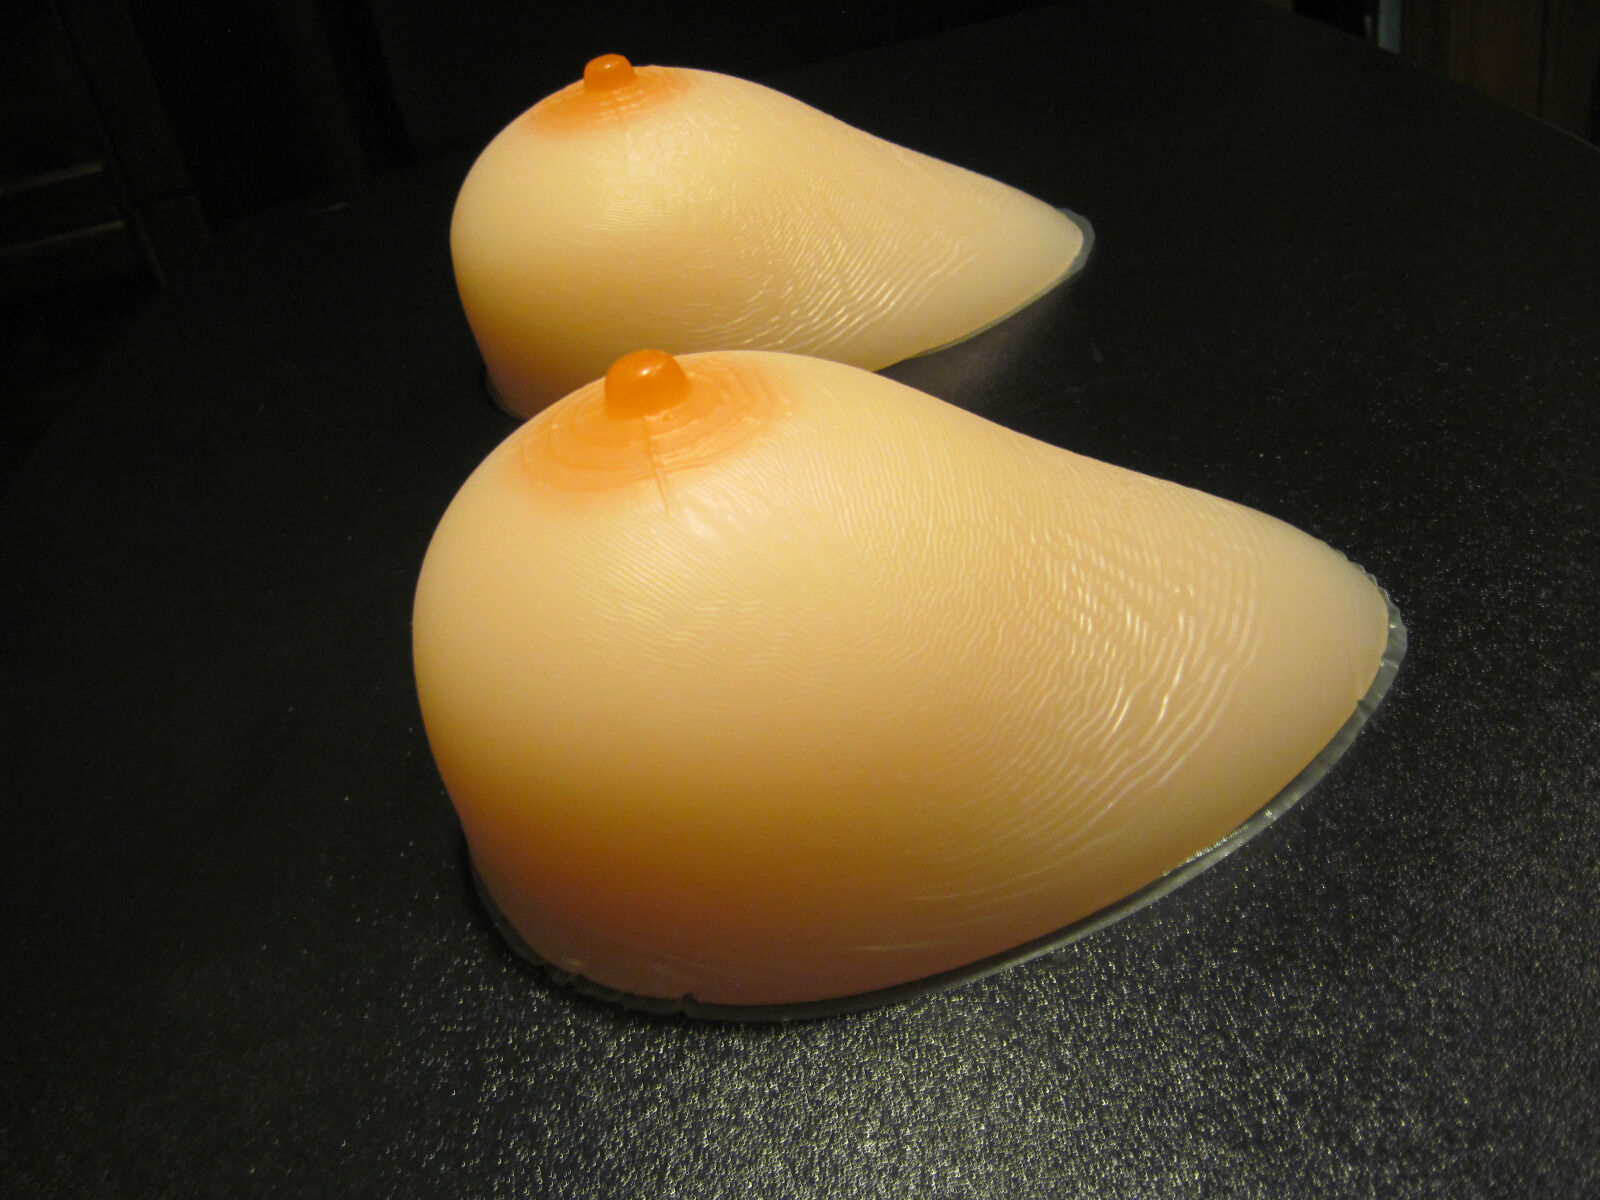 Silicone Breast Forms - Teardrop Shape - Large Size D Cup...